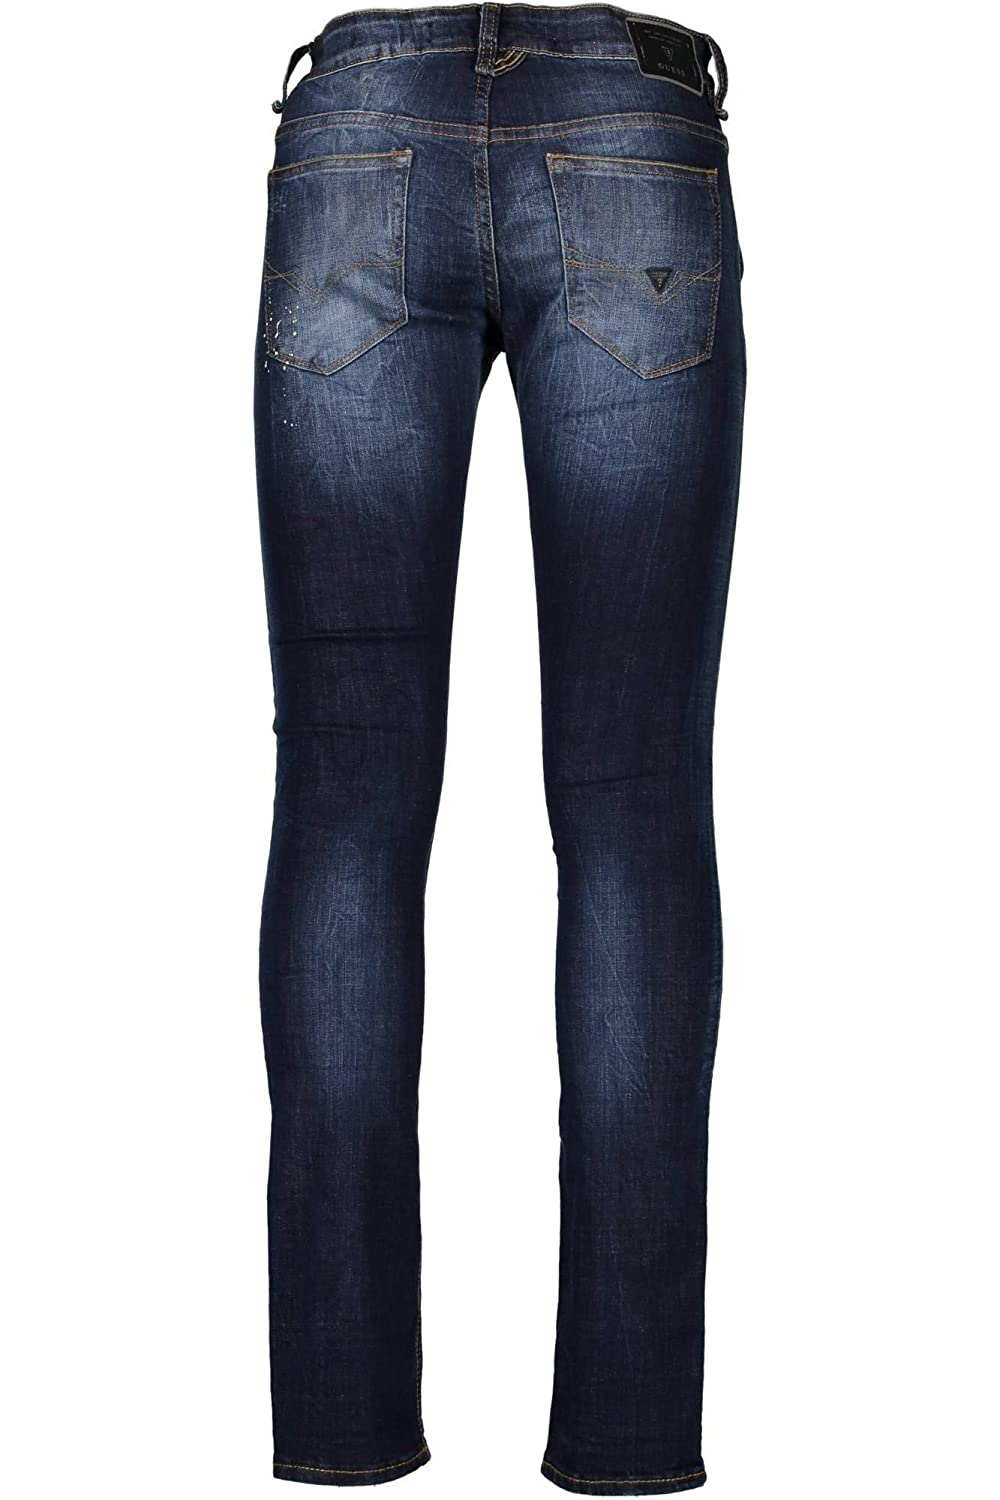 GUESS Jeans M52A81D1IS1 Denim Jeans Hombre Azul FAIX 29 ...